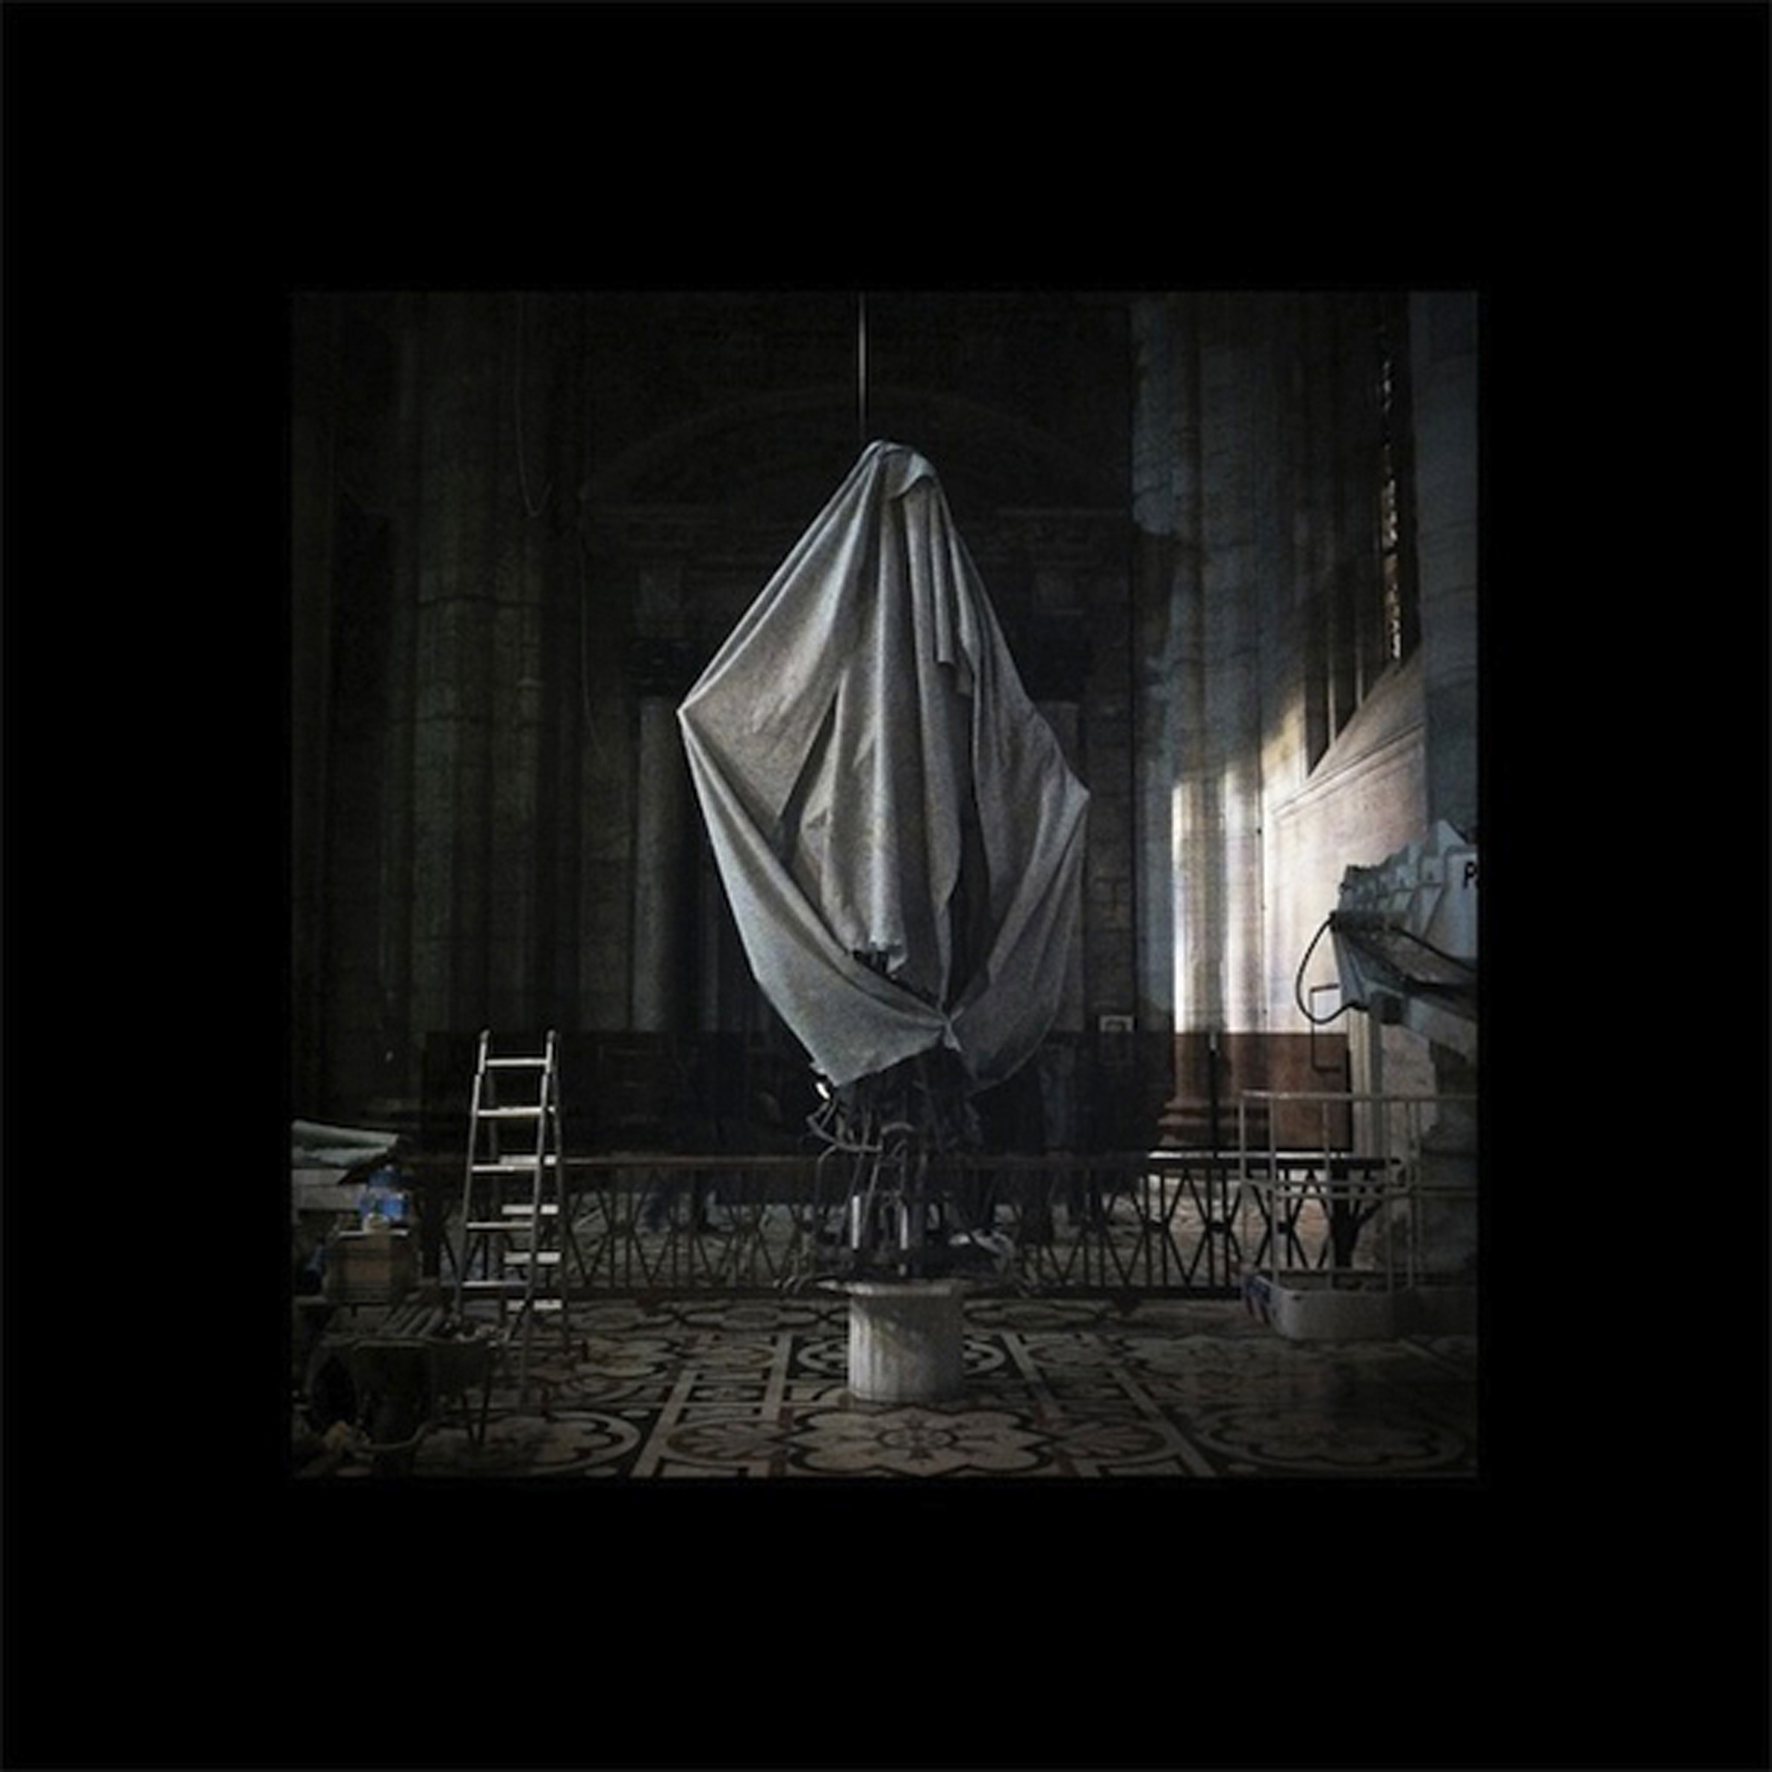 http://brainwashed.com/brain/images/tim_hecker-virgins.jpg